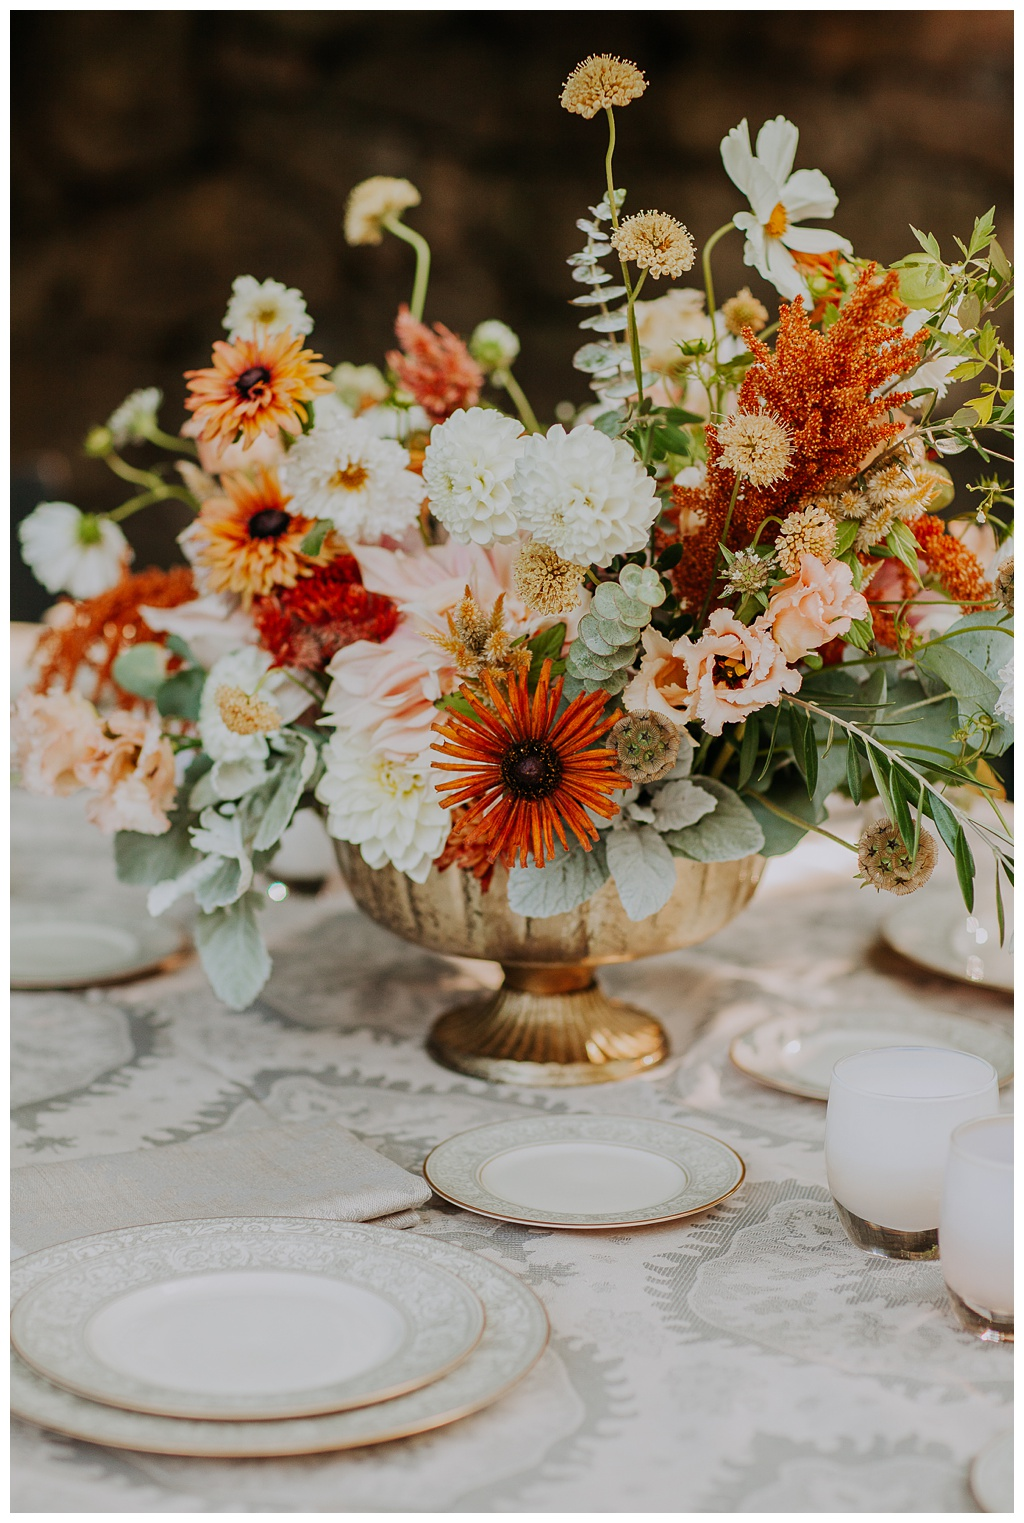 a wedding flower centerpiece on a table with fine china and dahlias, cosmos, lisianthius, and rudbeckia